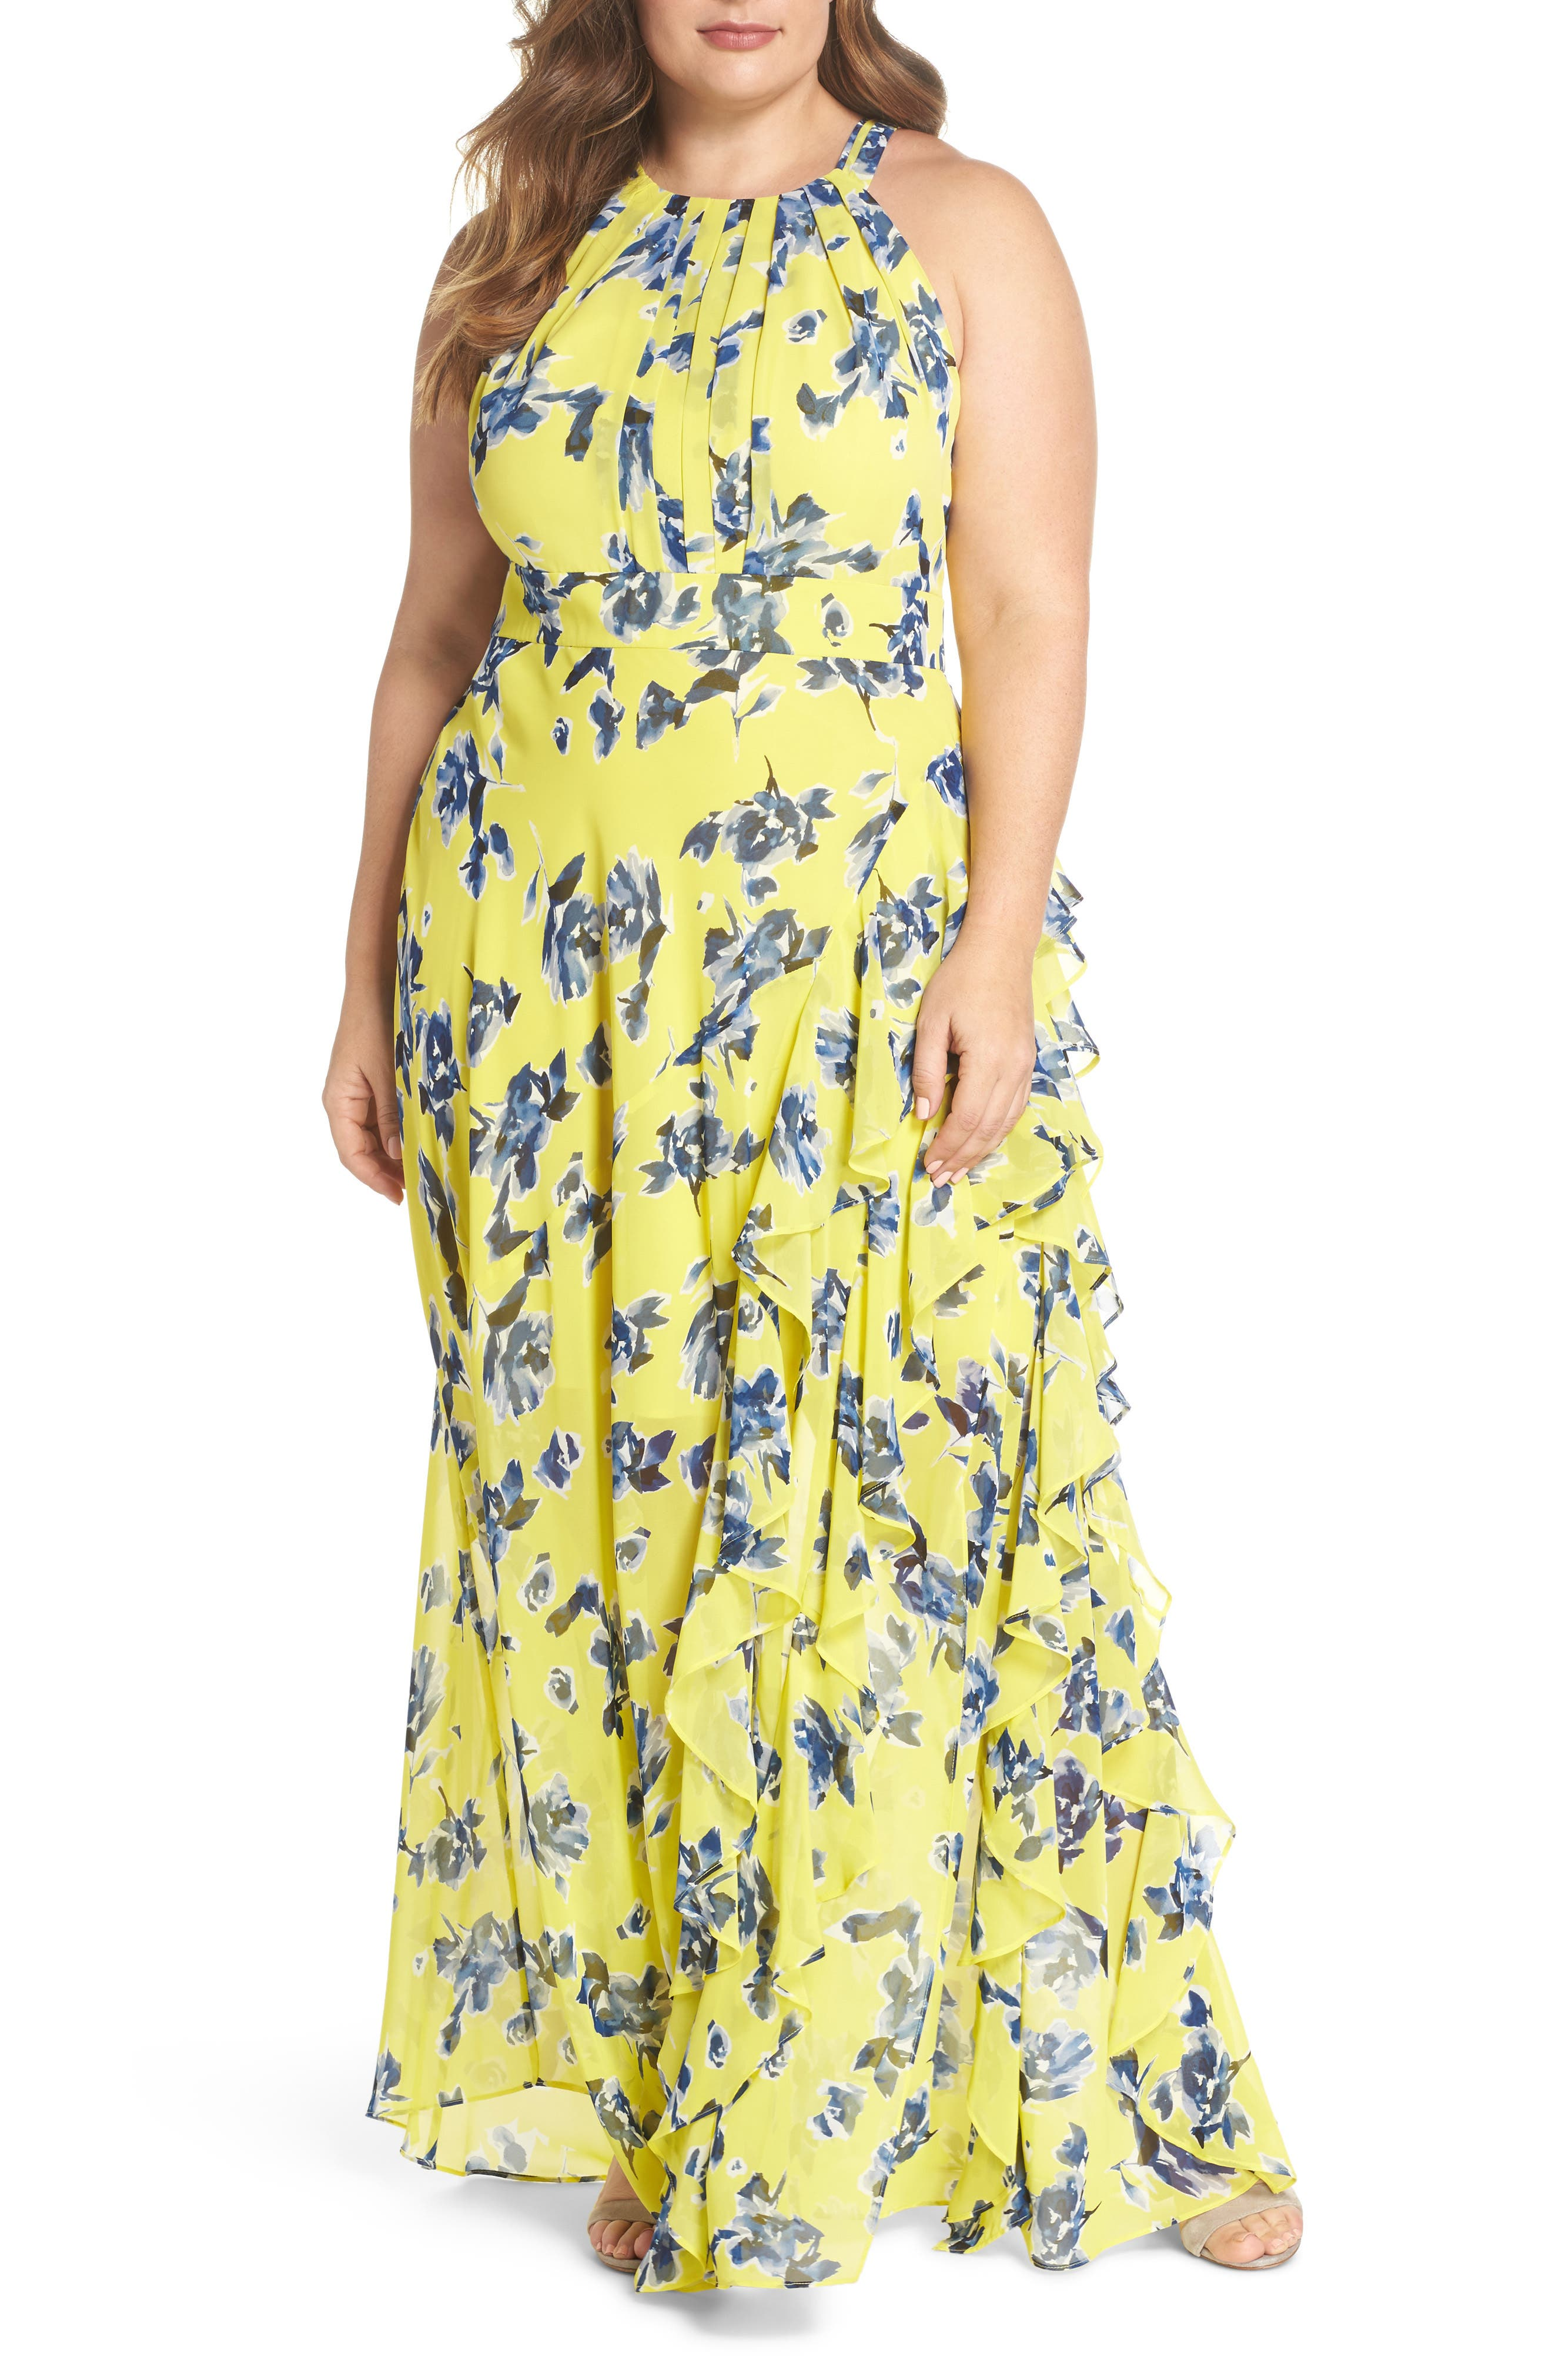 Alternate Image 1 Selected - Eliza J Floral Ruffle Halter Maxi Dress (Plus Size)